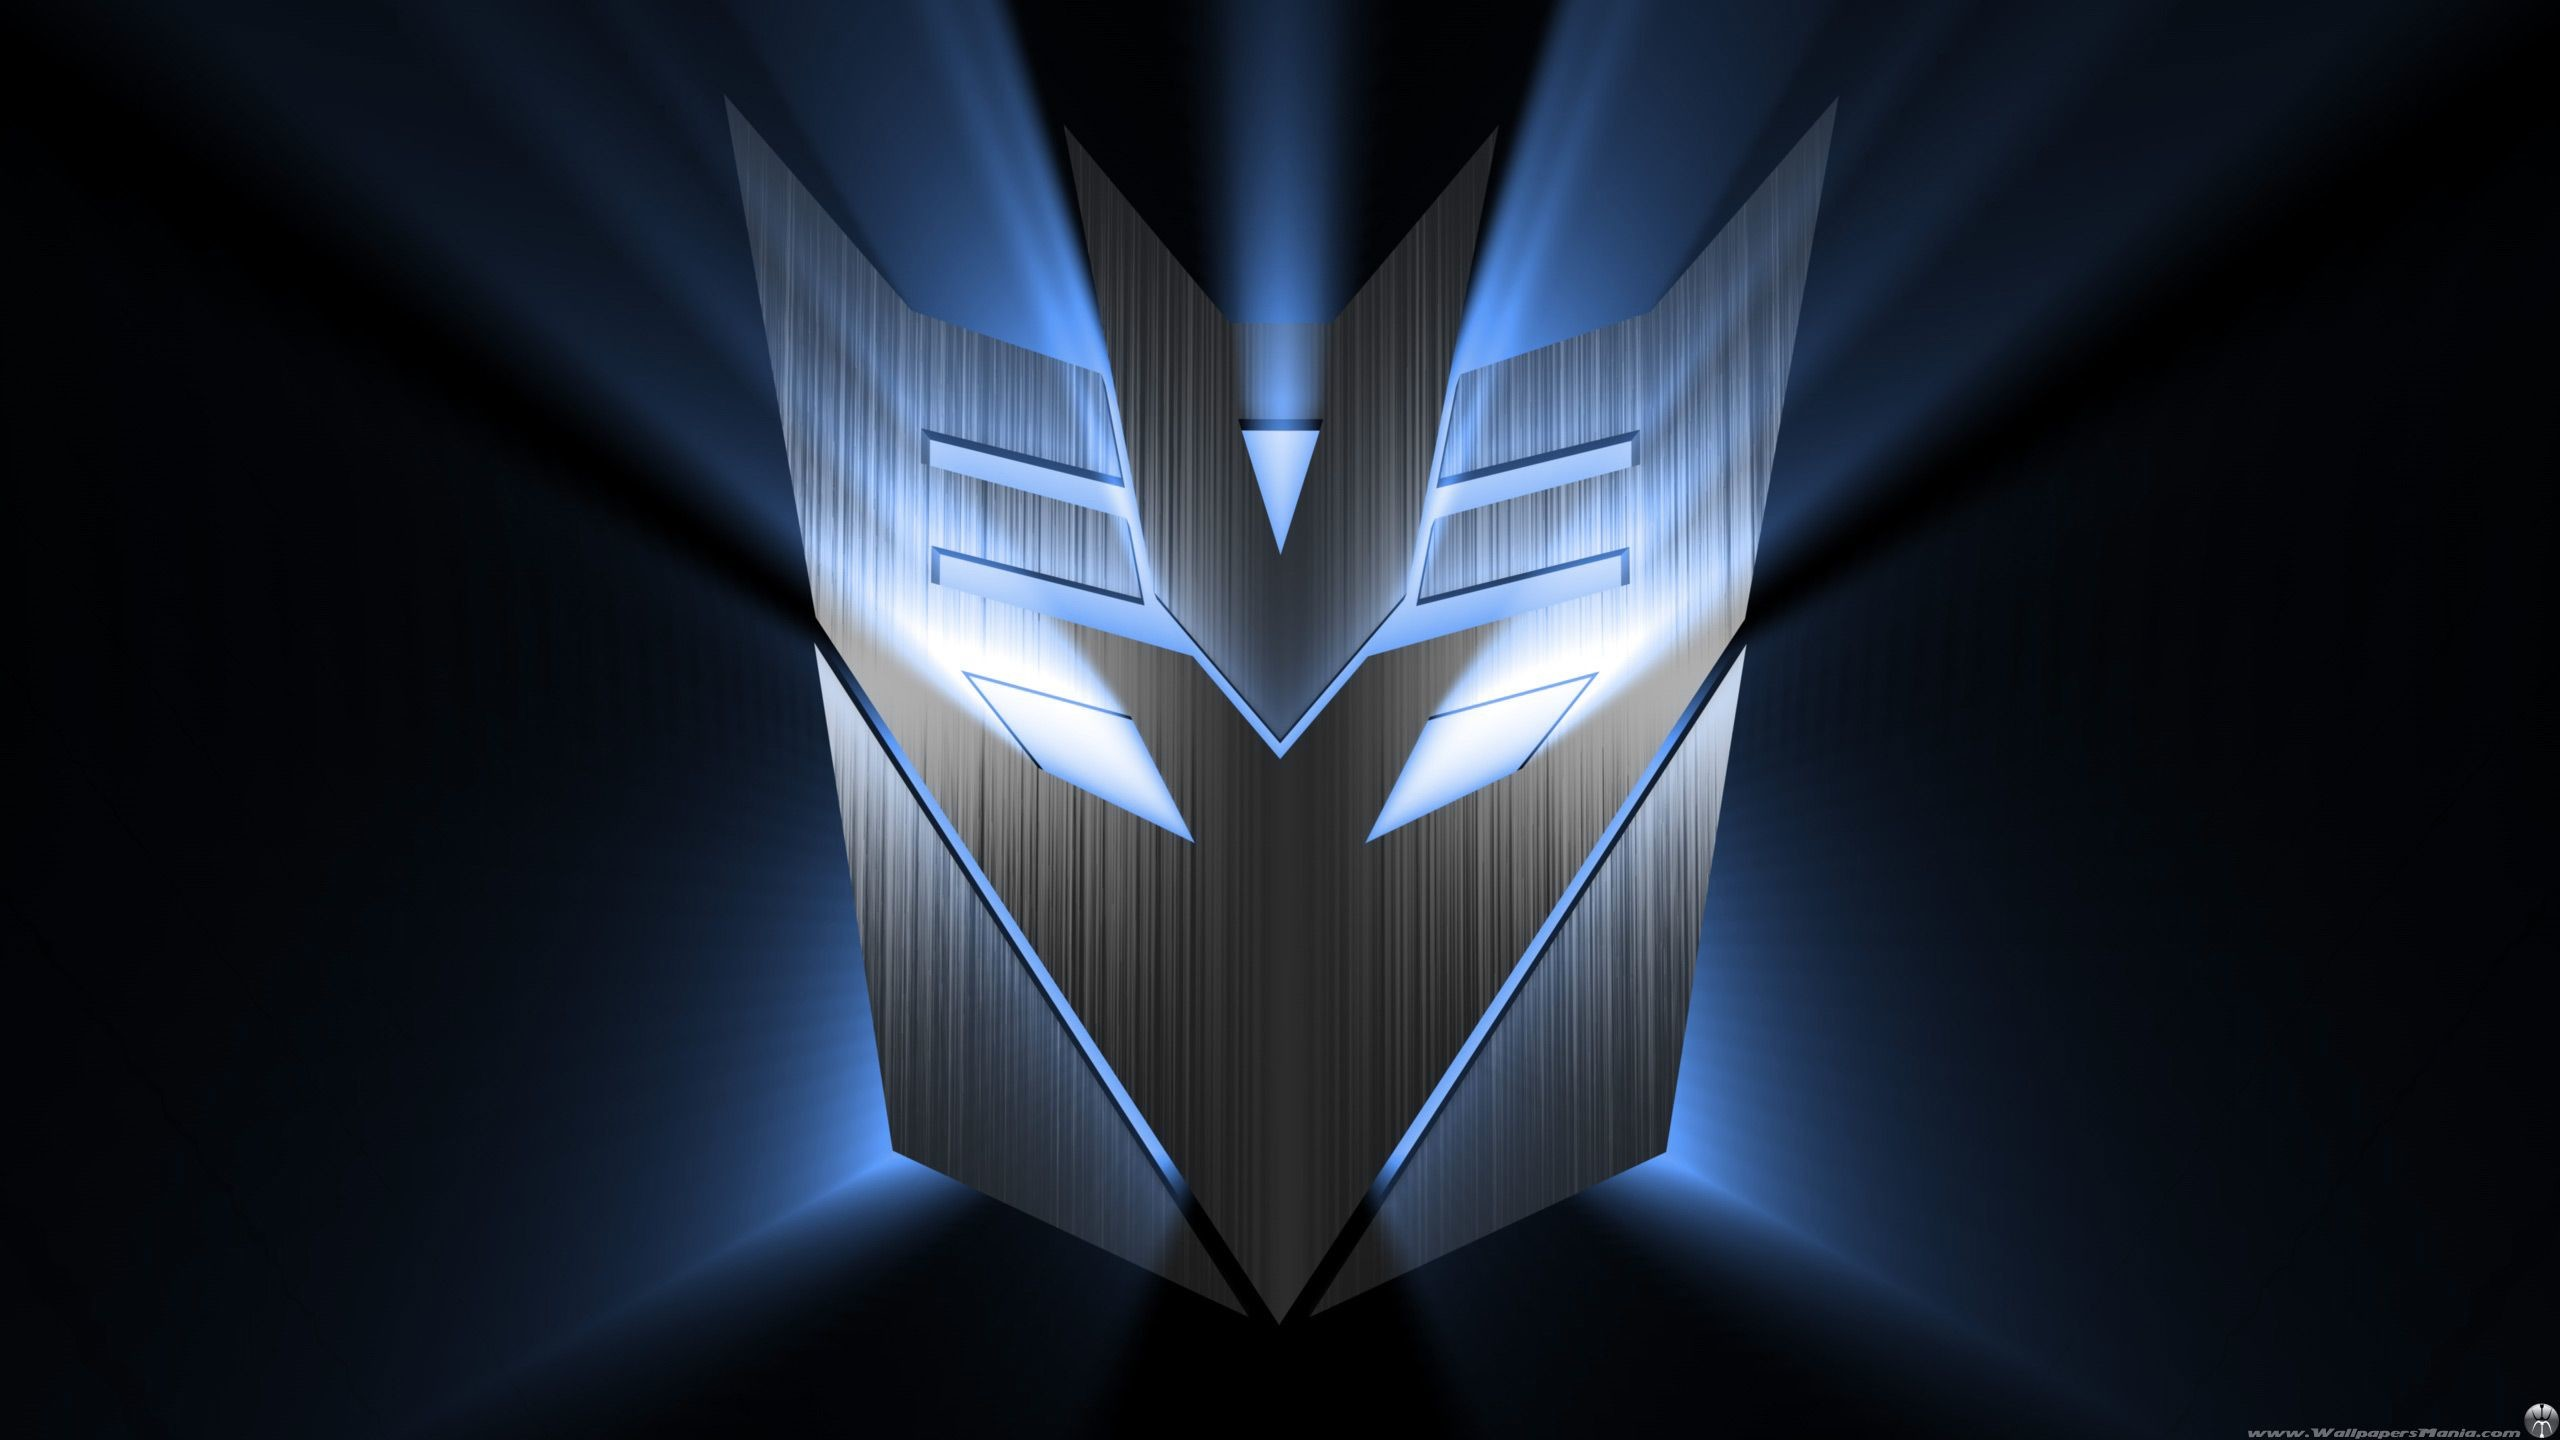 Res: 2560x1440, Wallpapers+Transformer+Of+The+Moon+Transformers+Decepticons+Logo+